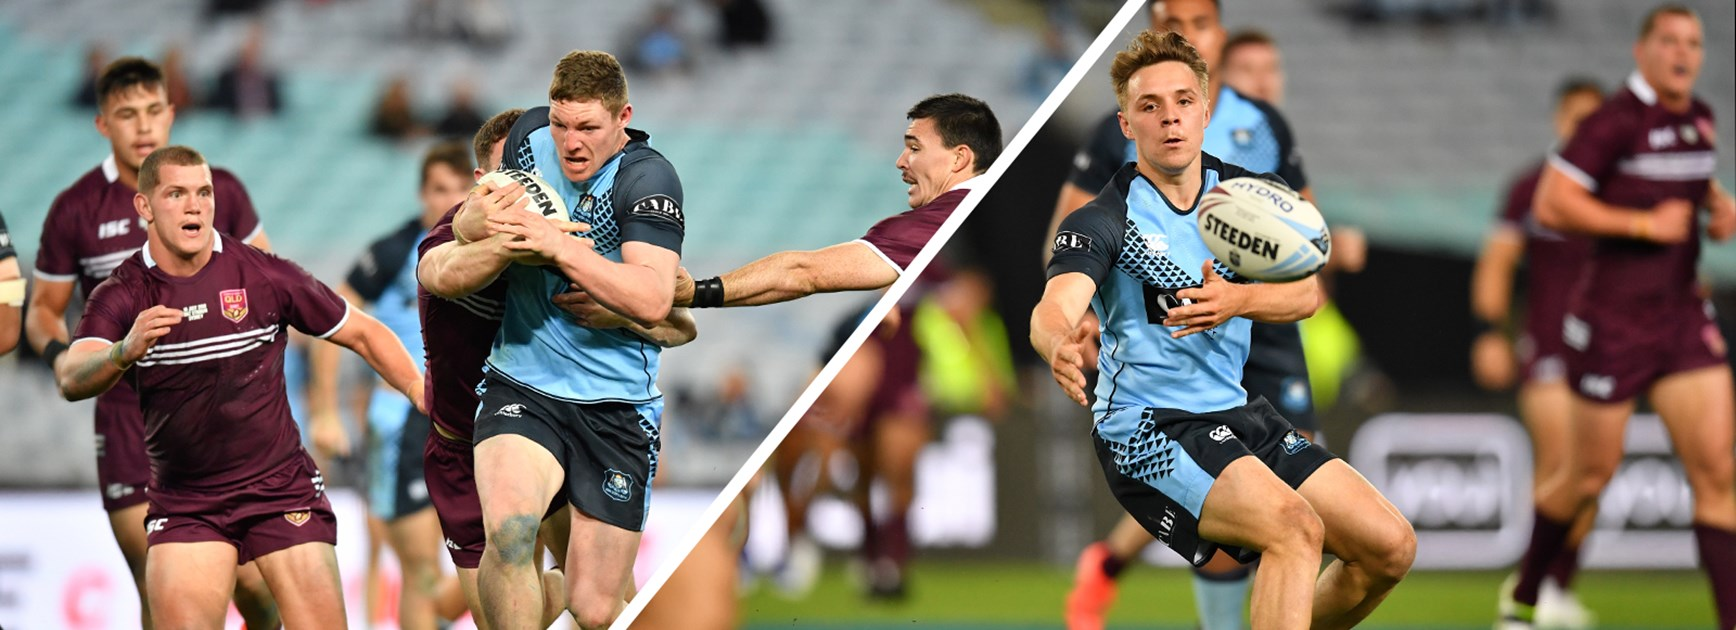 Rodwell and Taaffe put in strong performances in Blues dominance of QLD